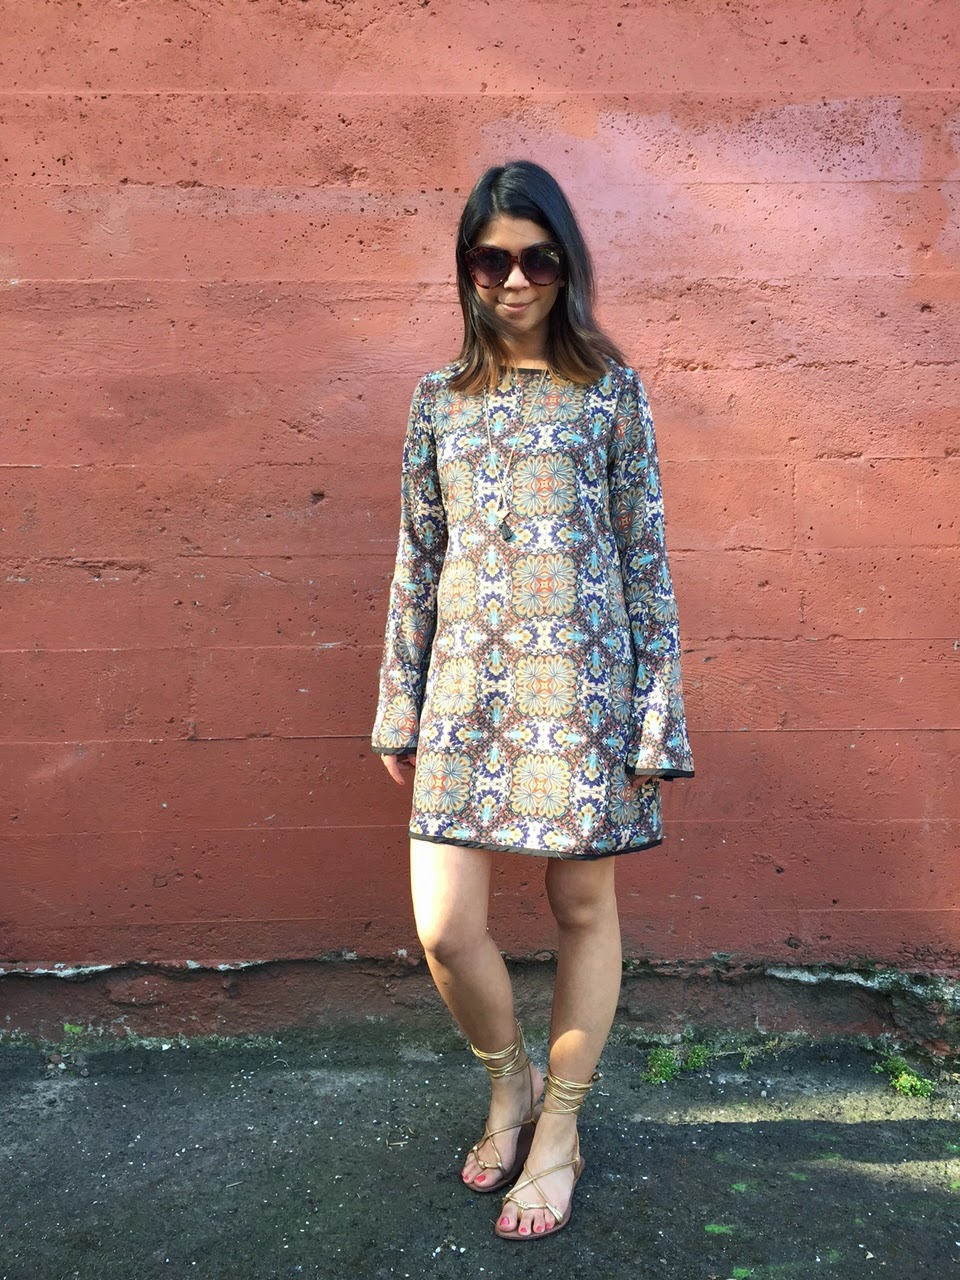 sunglasses, paisley dress, tj maxx, maxxinista, affordable fashion, portland blogger, fashion blogger, spring 2015, gold tie up sandals